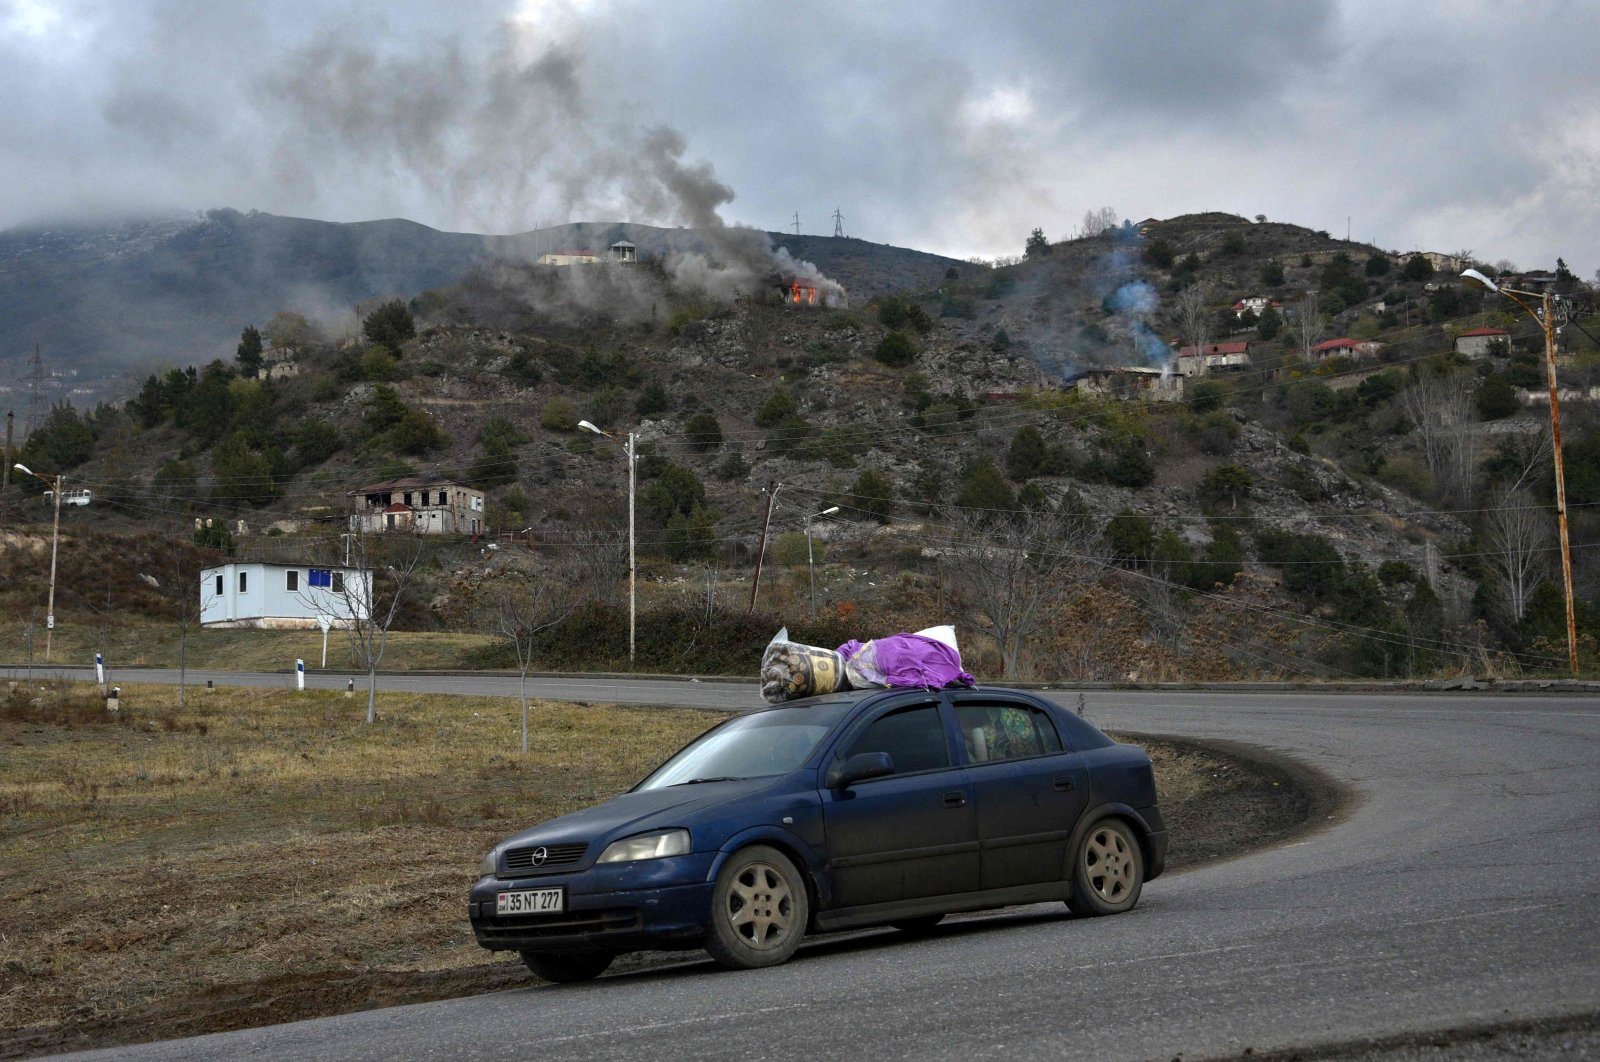 A car loaded with belongings moves on a road in front of the town of Lachin, Azerbaijan, Nov. 30, 2020. (AFP Photo)